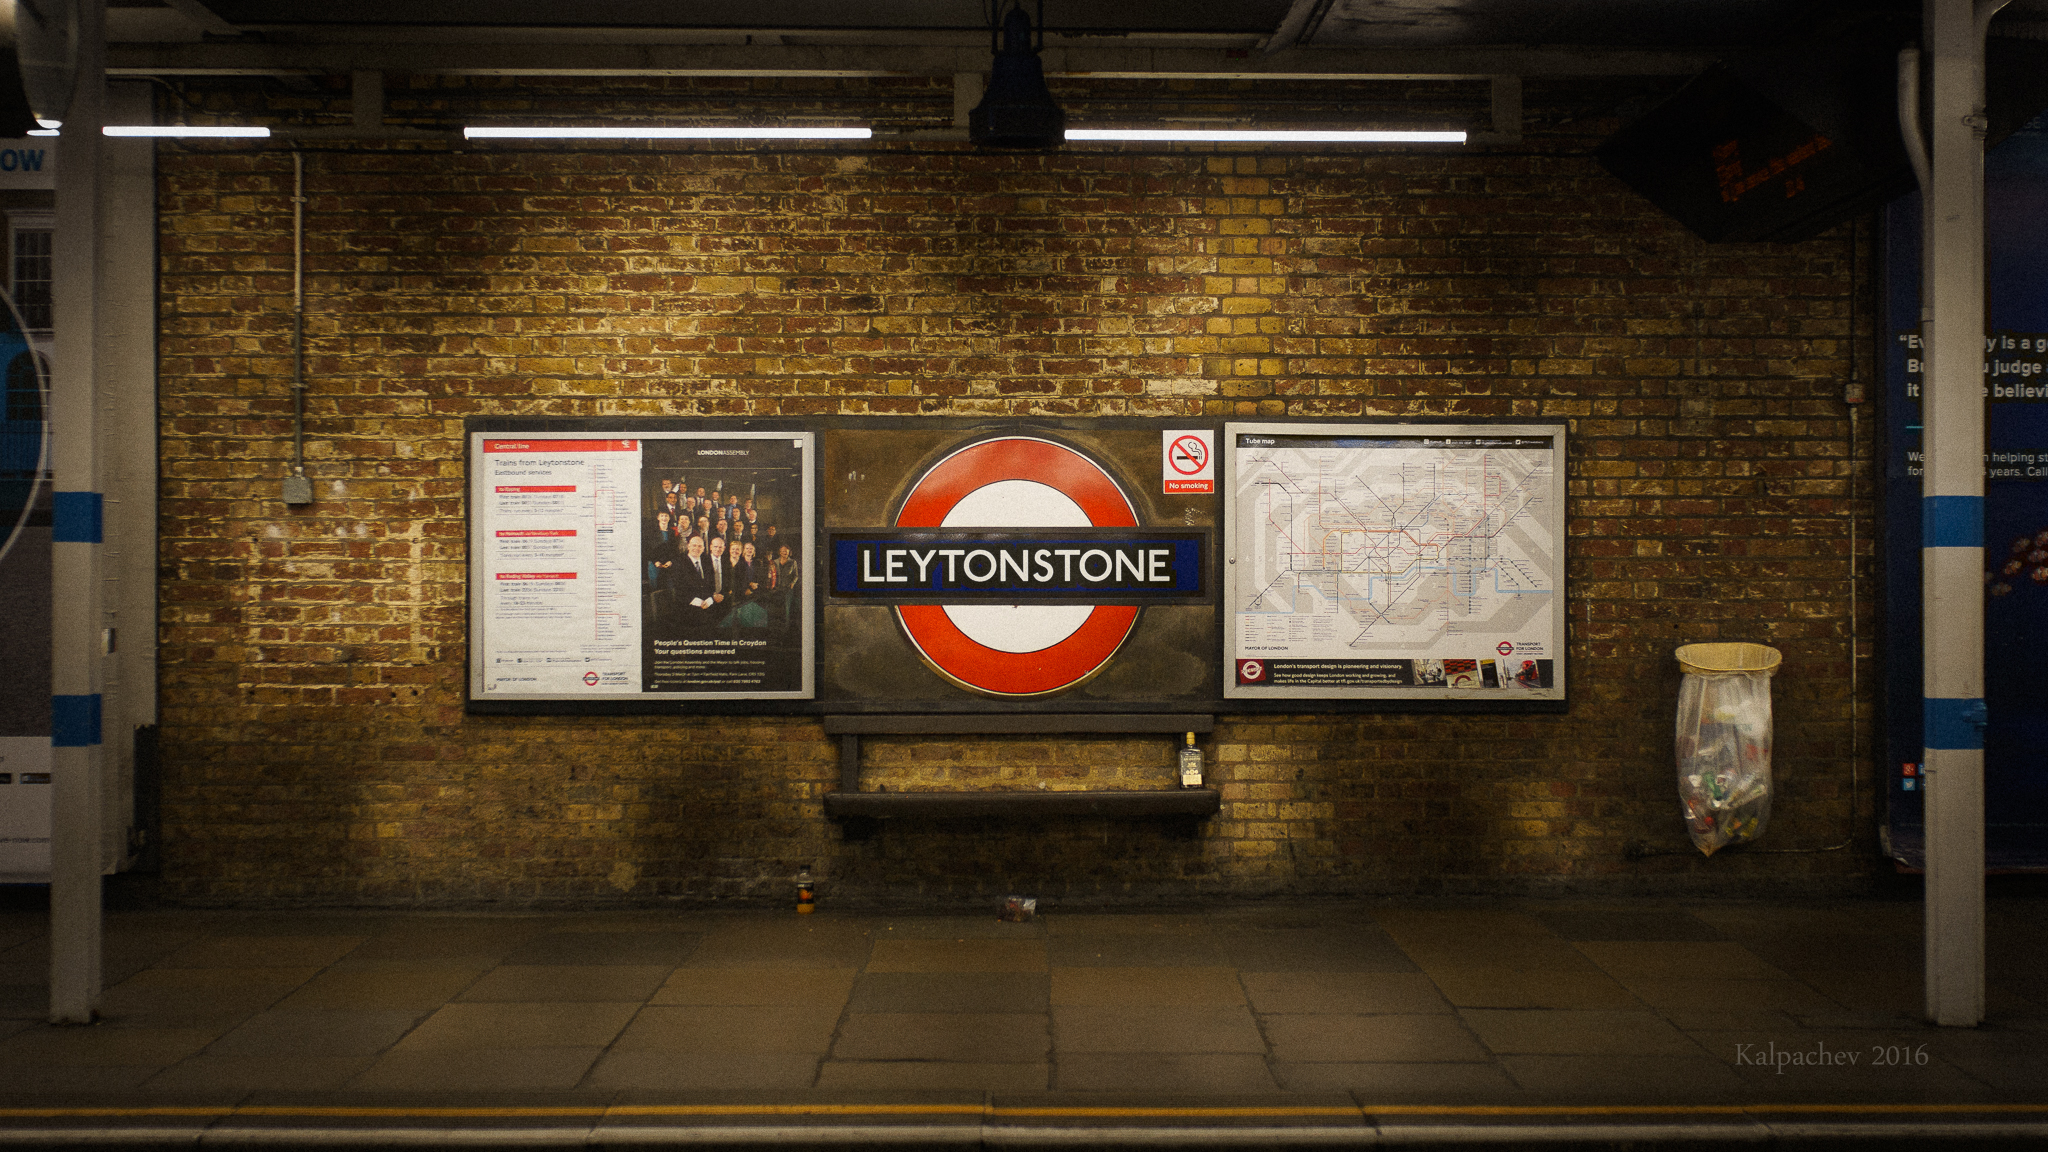 Leytonstone tube station London